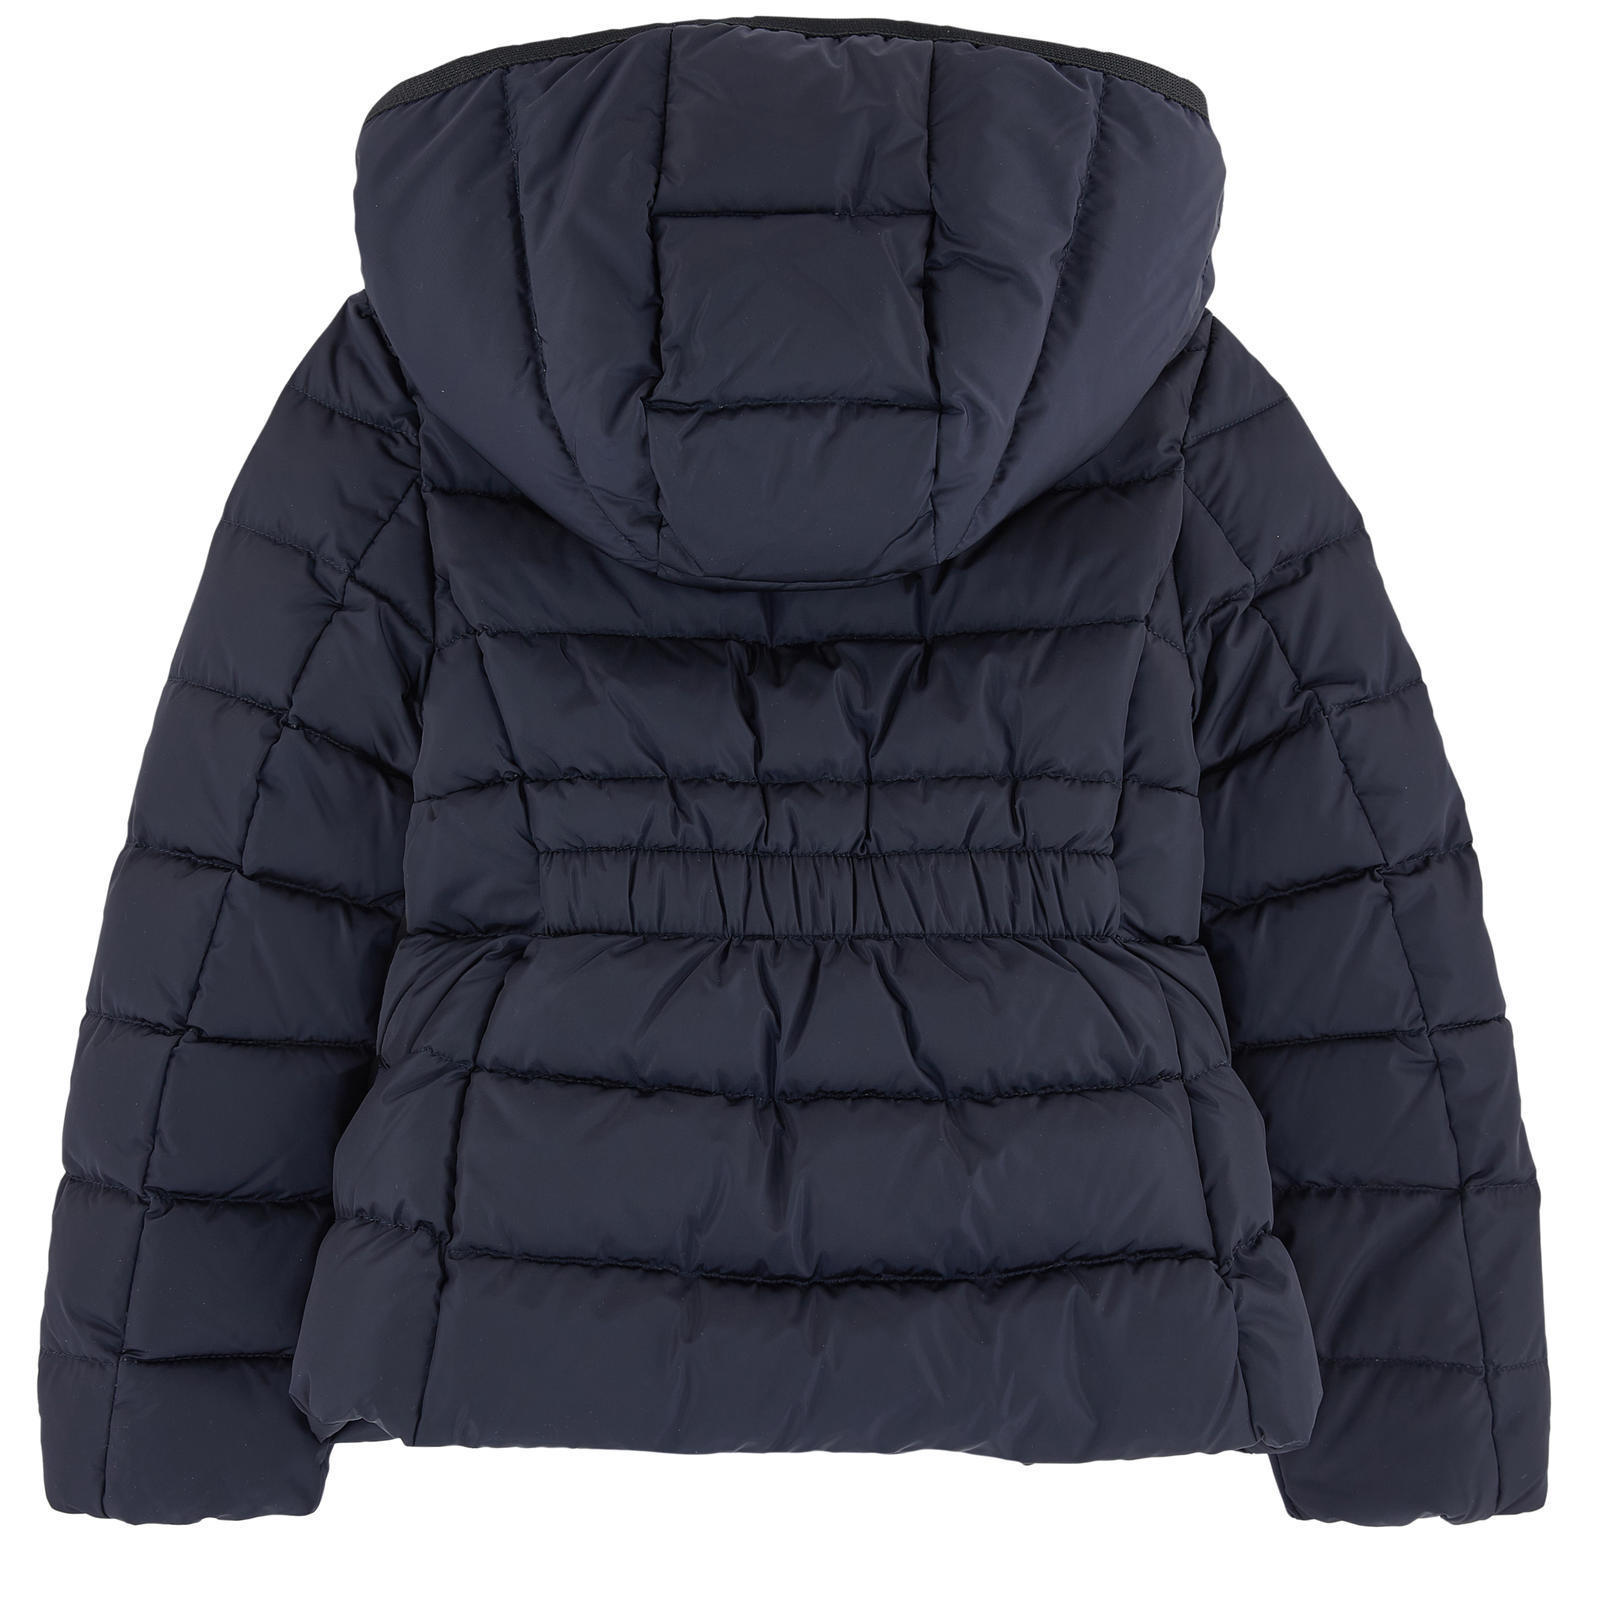 Moncler★2017AW新作★ダウンジャケット★SABY★4~6A